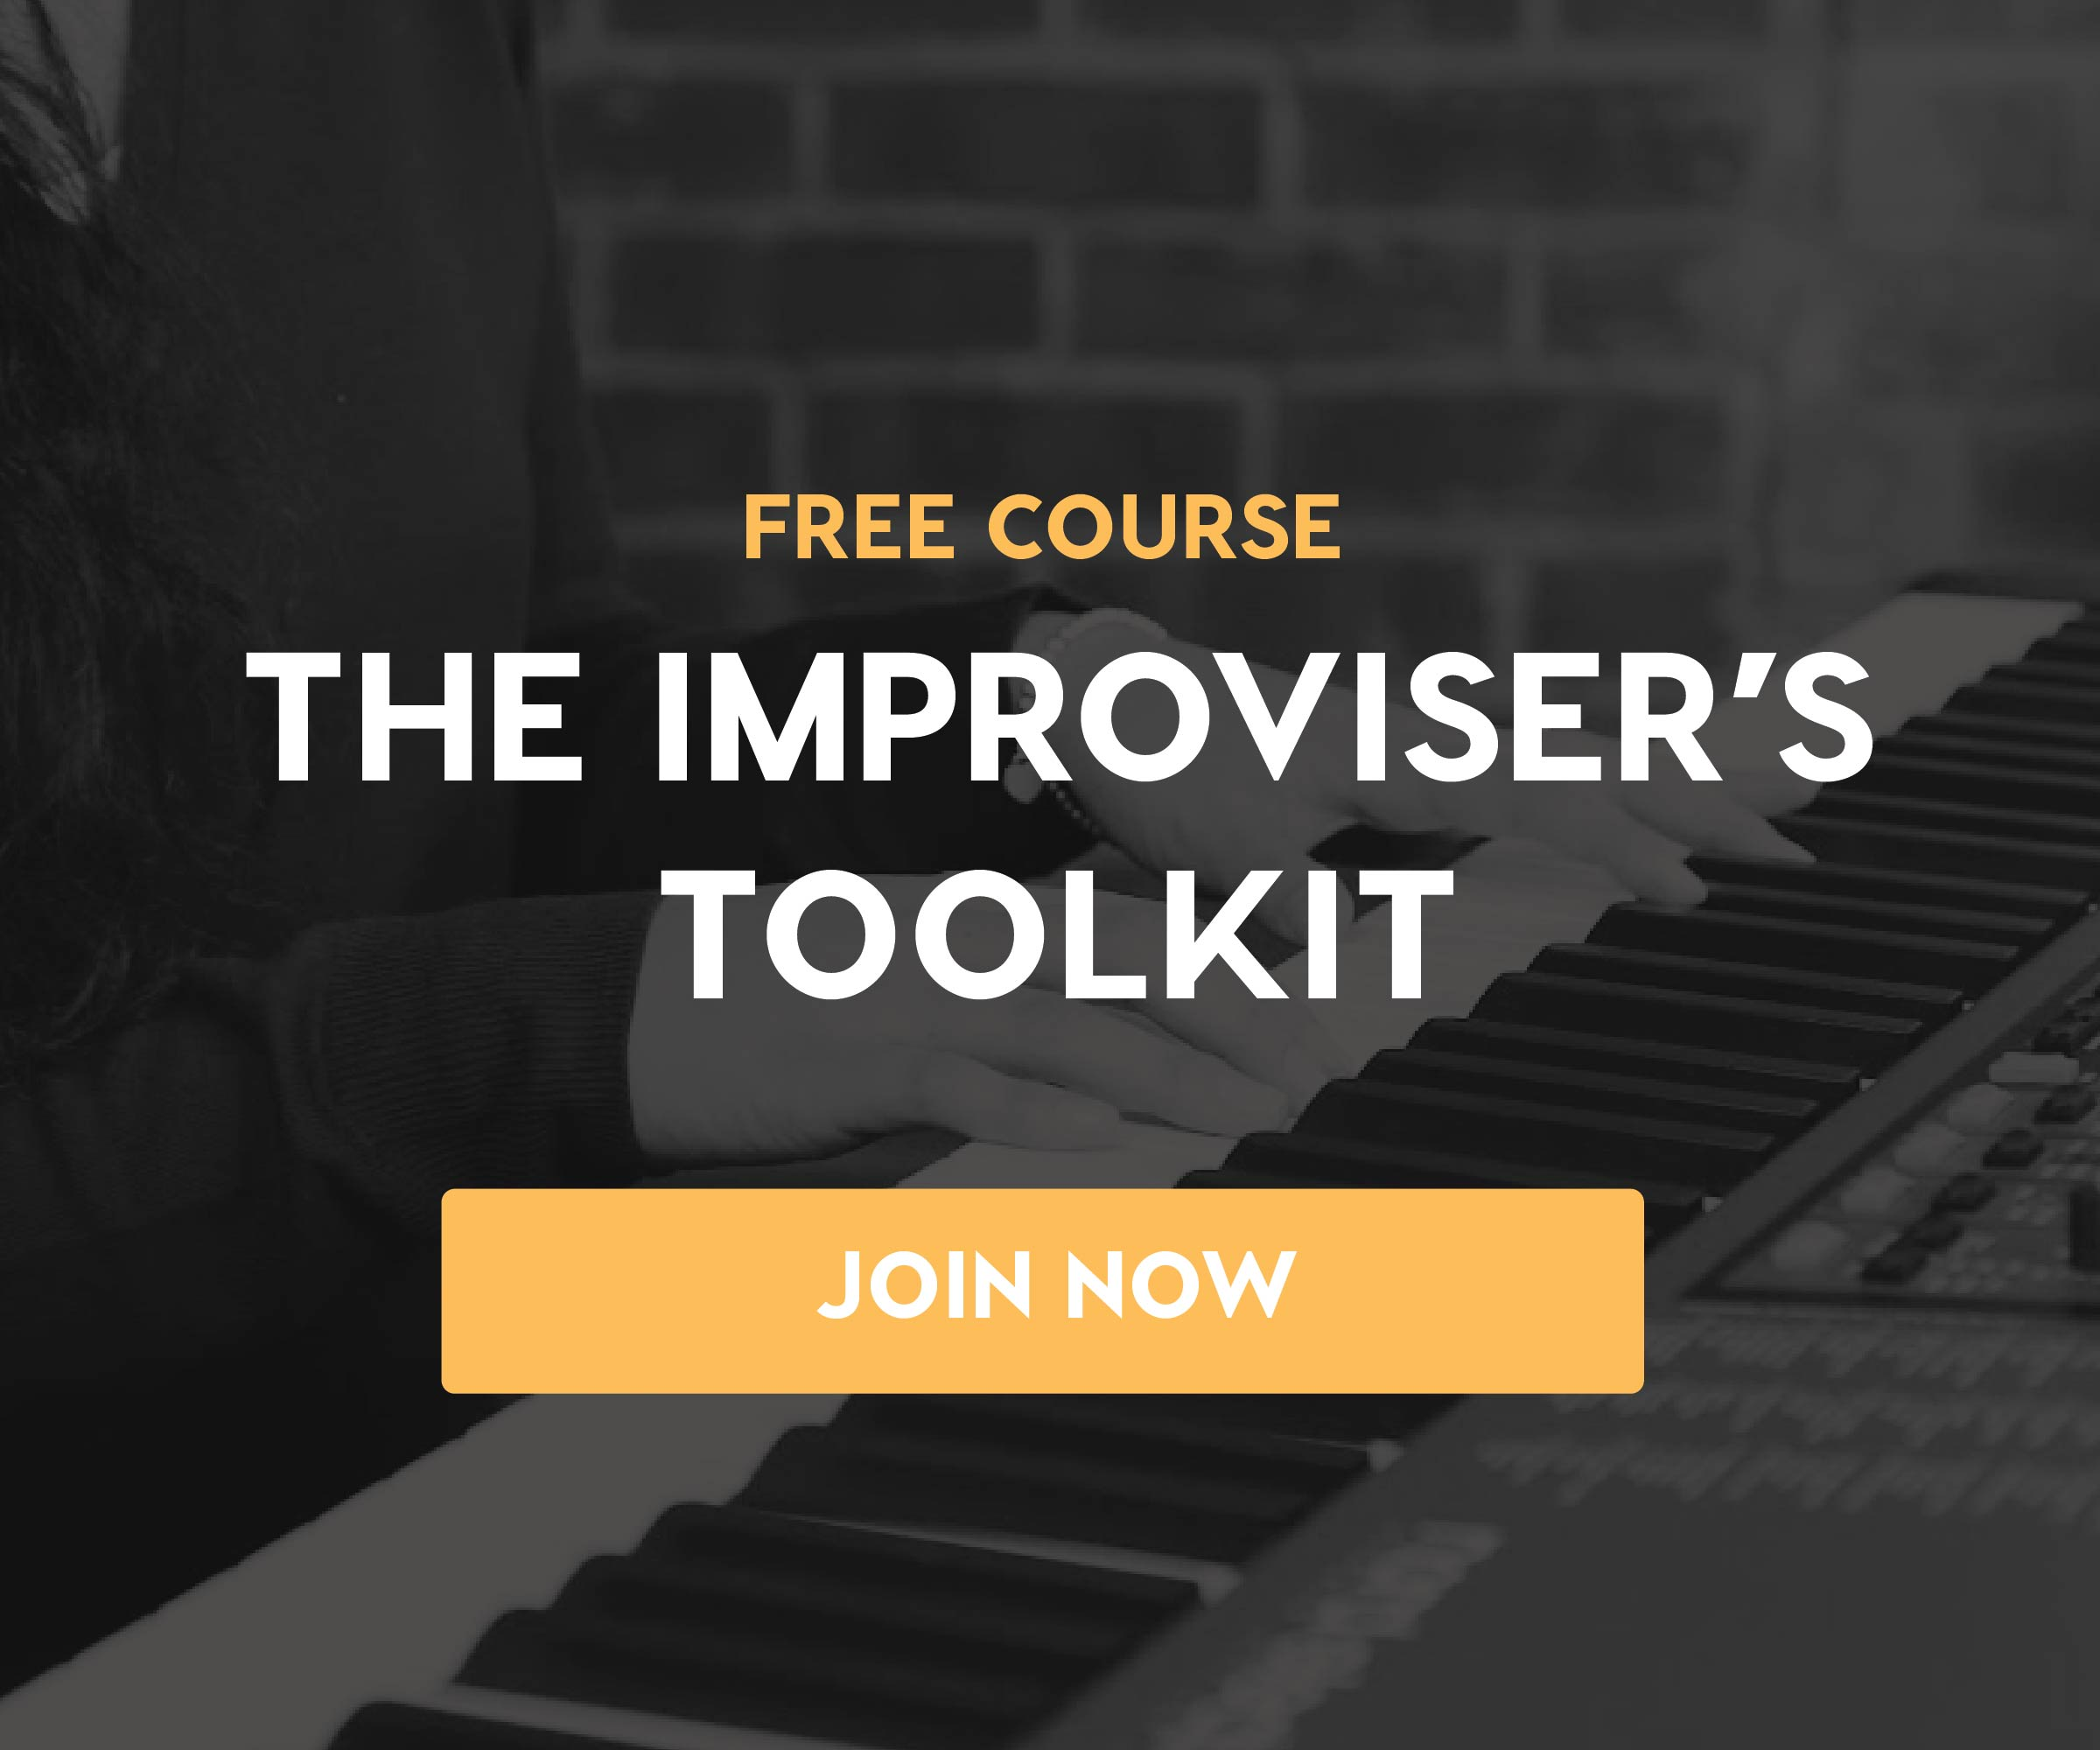 How to create dreamier guitar chords soundfly get the top flypaper articles delivered straight to your inbox once a week hexwebz Choice Image